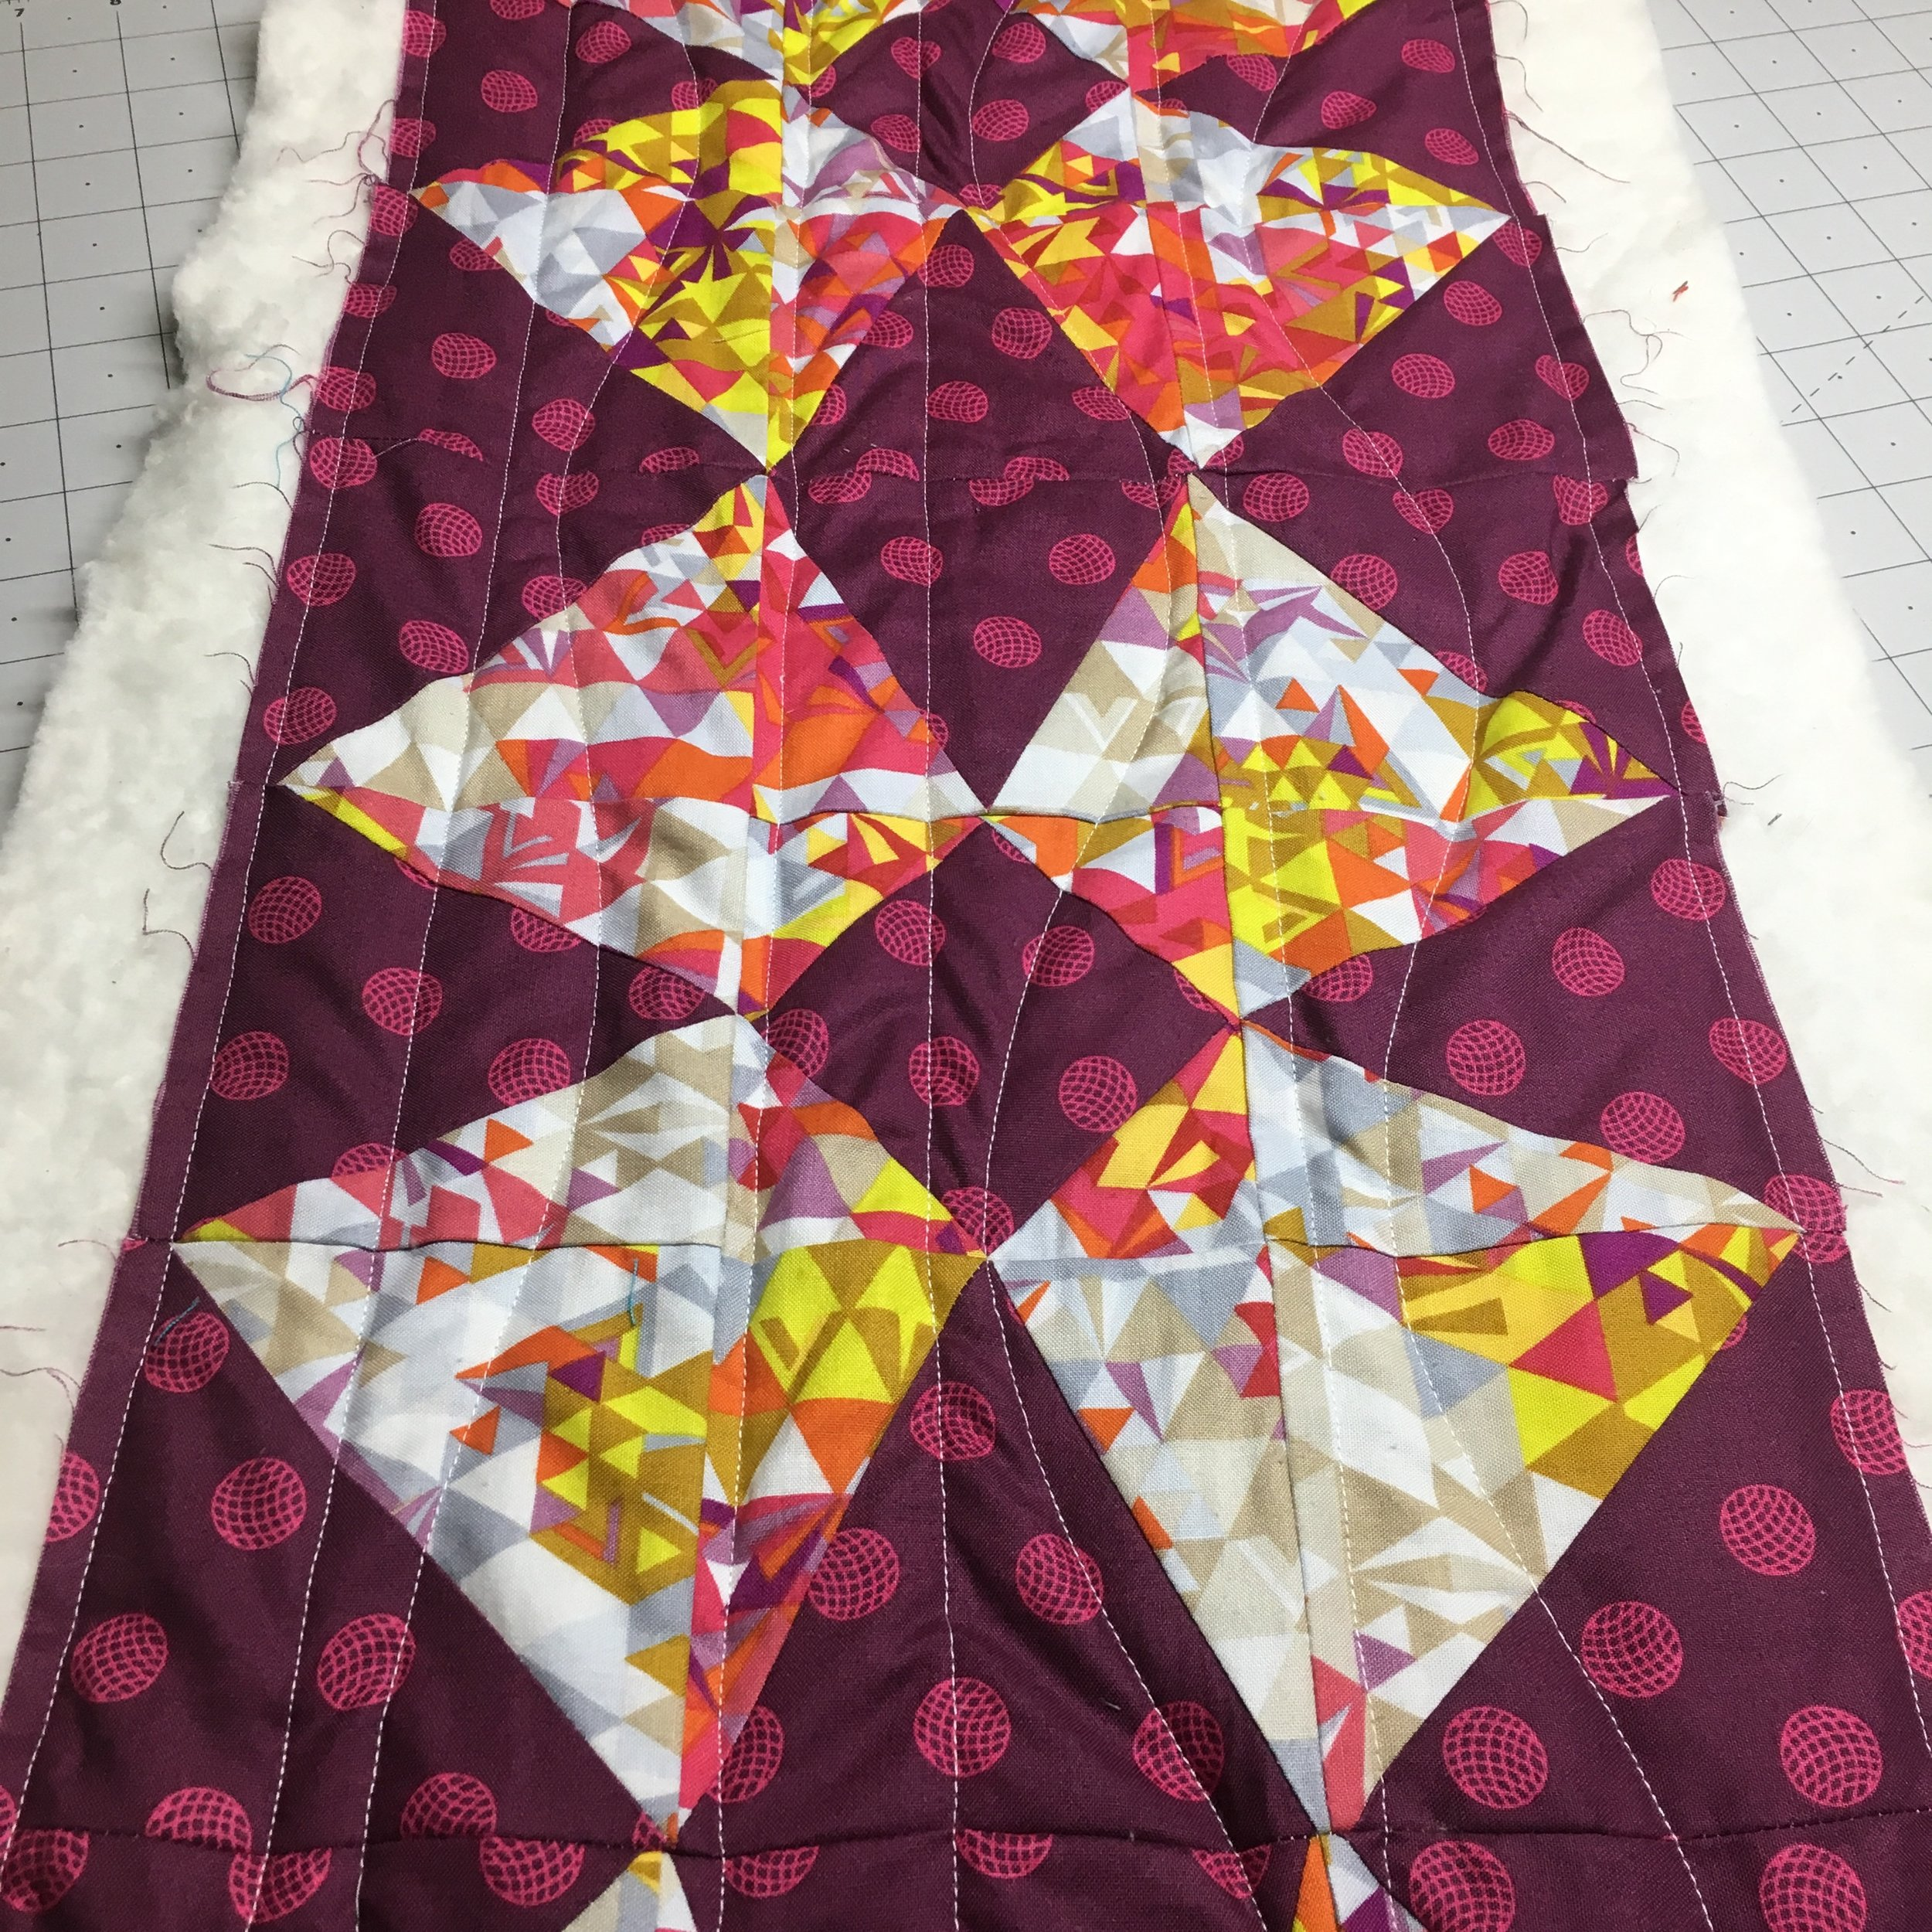 Use Straight and Wavy Lines to Simply and Easily Finish Your Own Quilts -- Click through to join HollyAnne Knight of String & Story to learn more and get started!